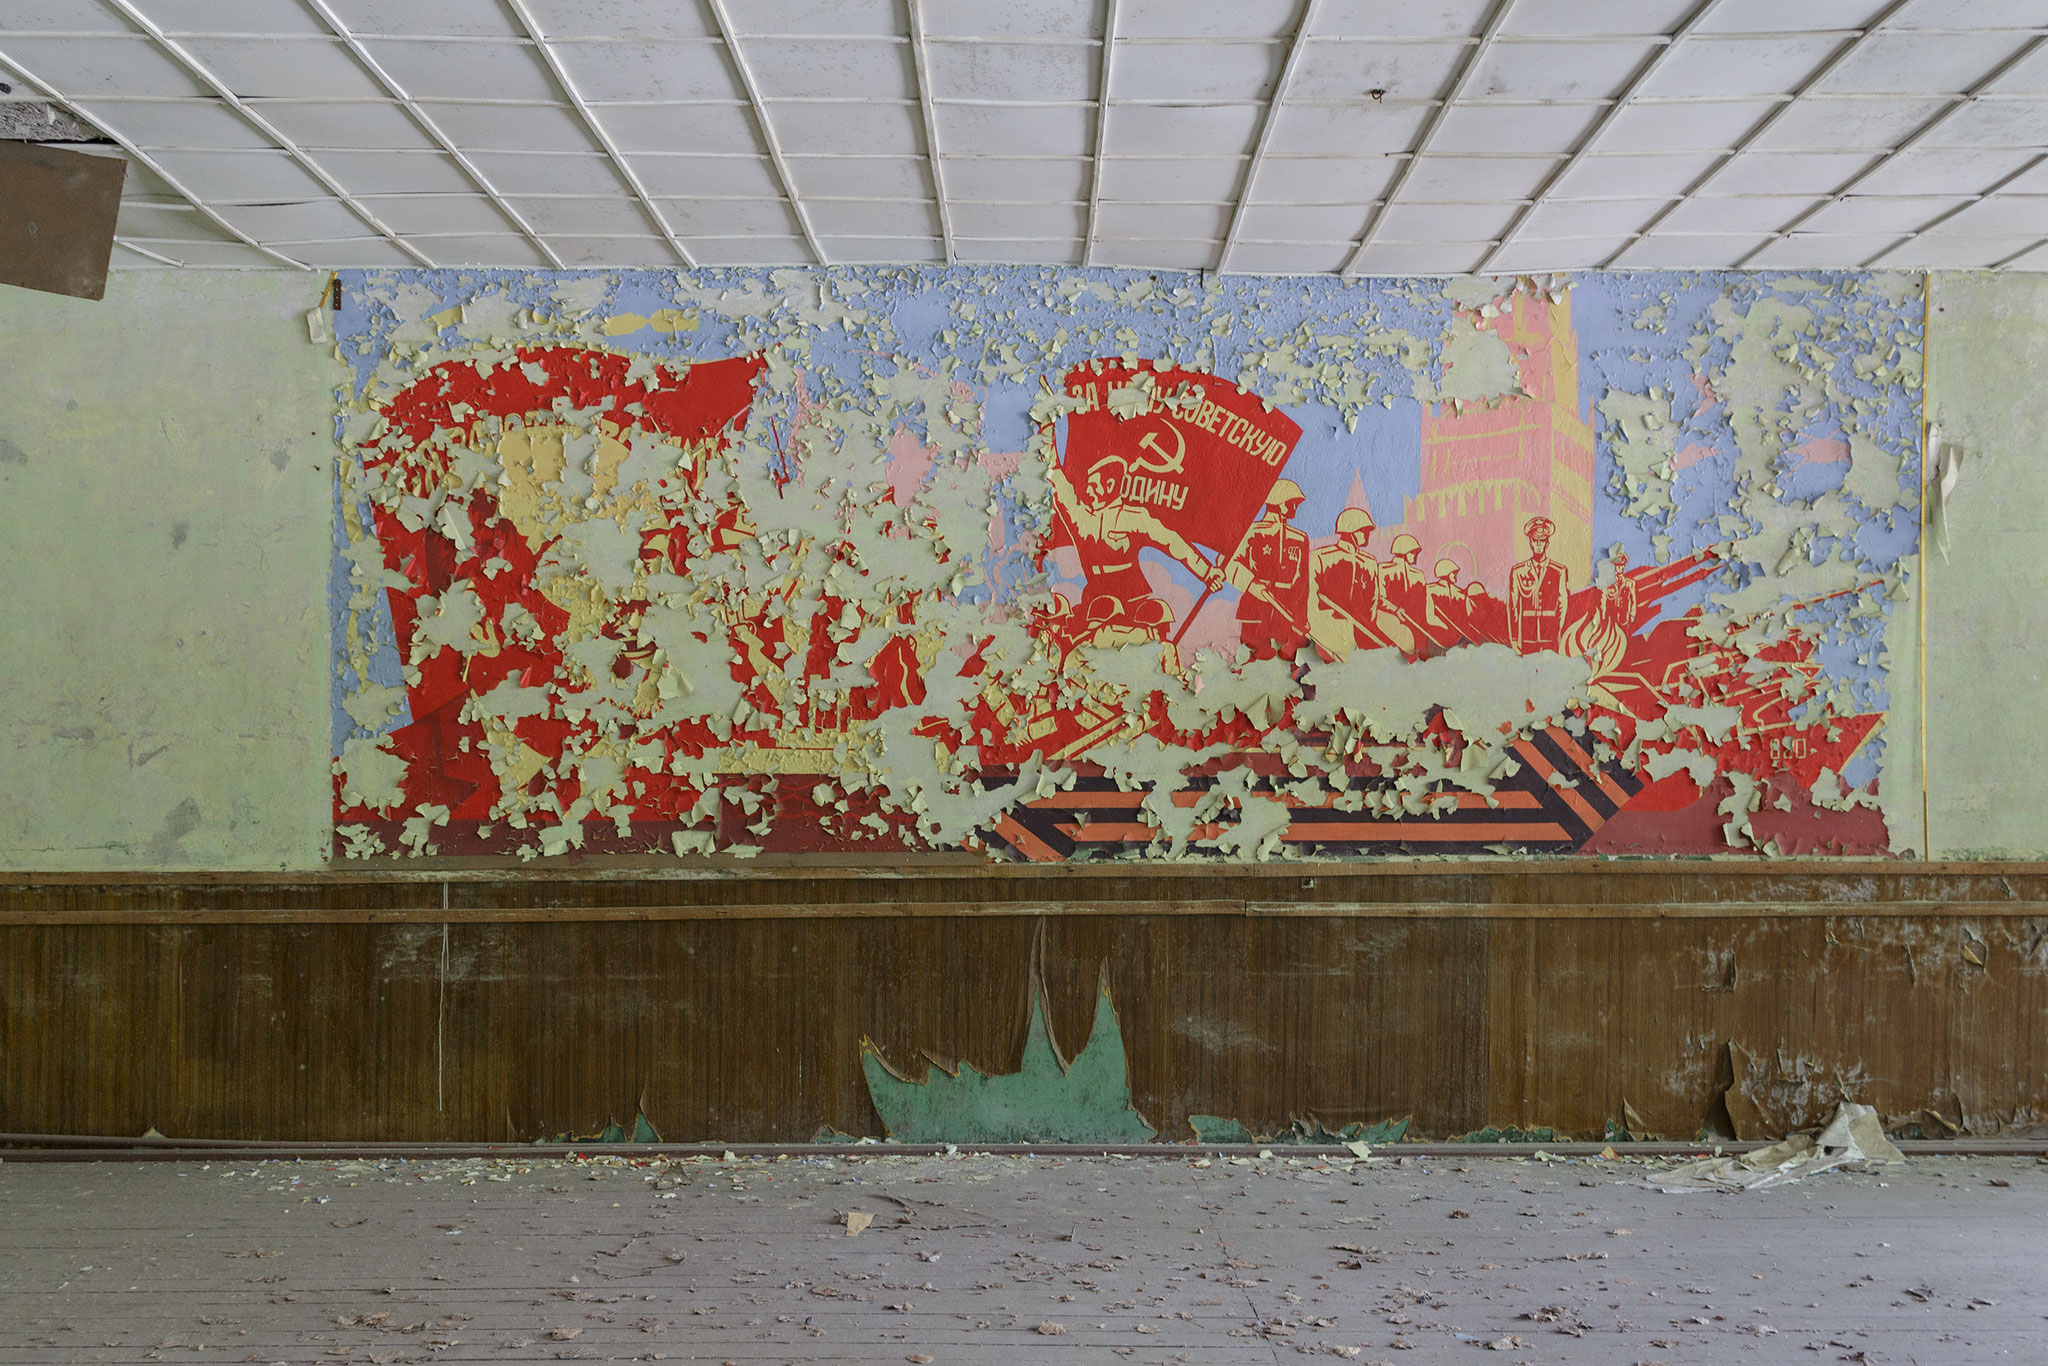 Mural in the repair facility, 2019